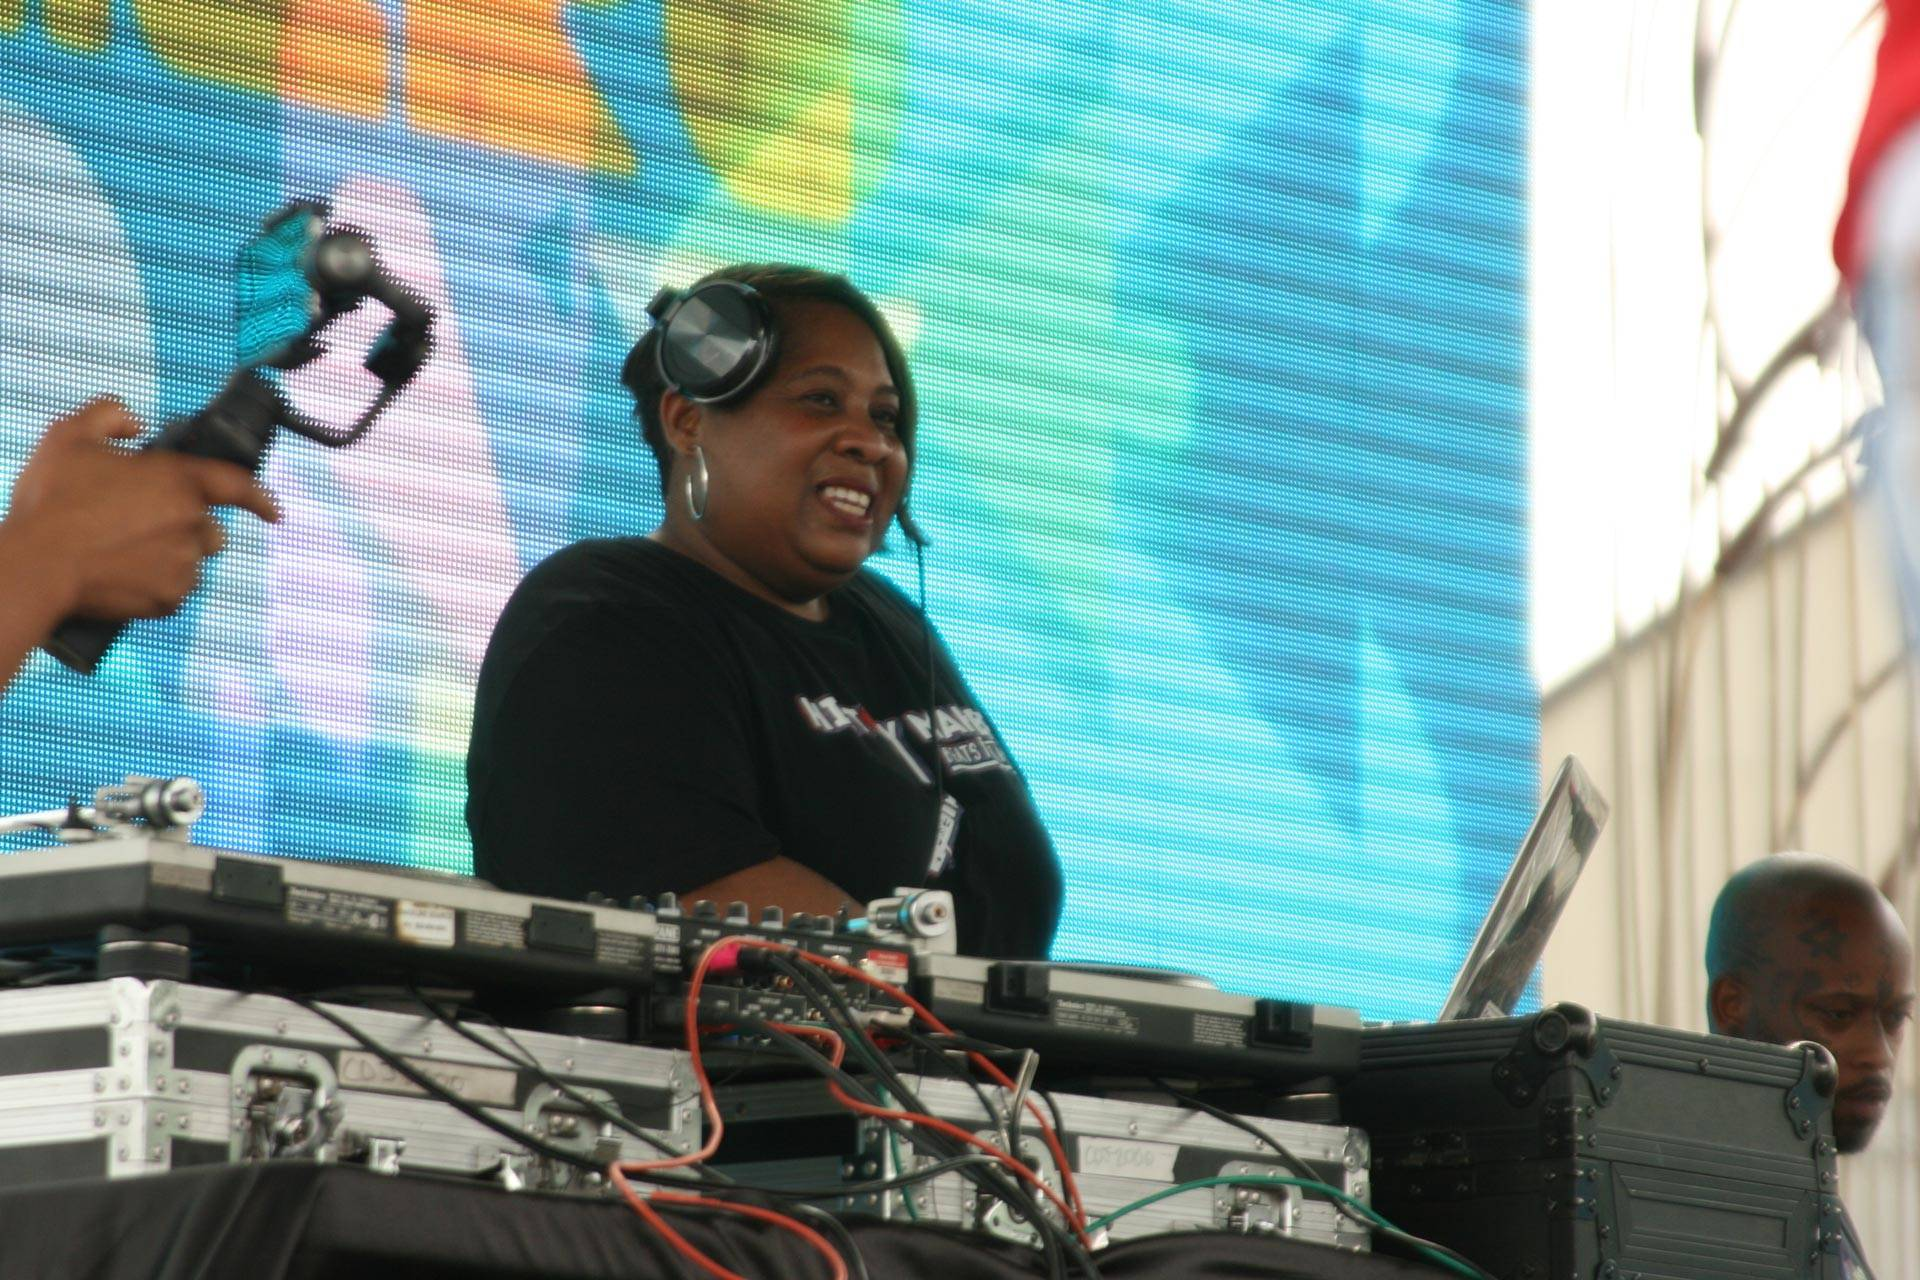 Pam the Funkstress performs at Hiero Day 2017. Gabe Meline